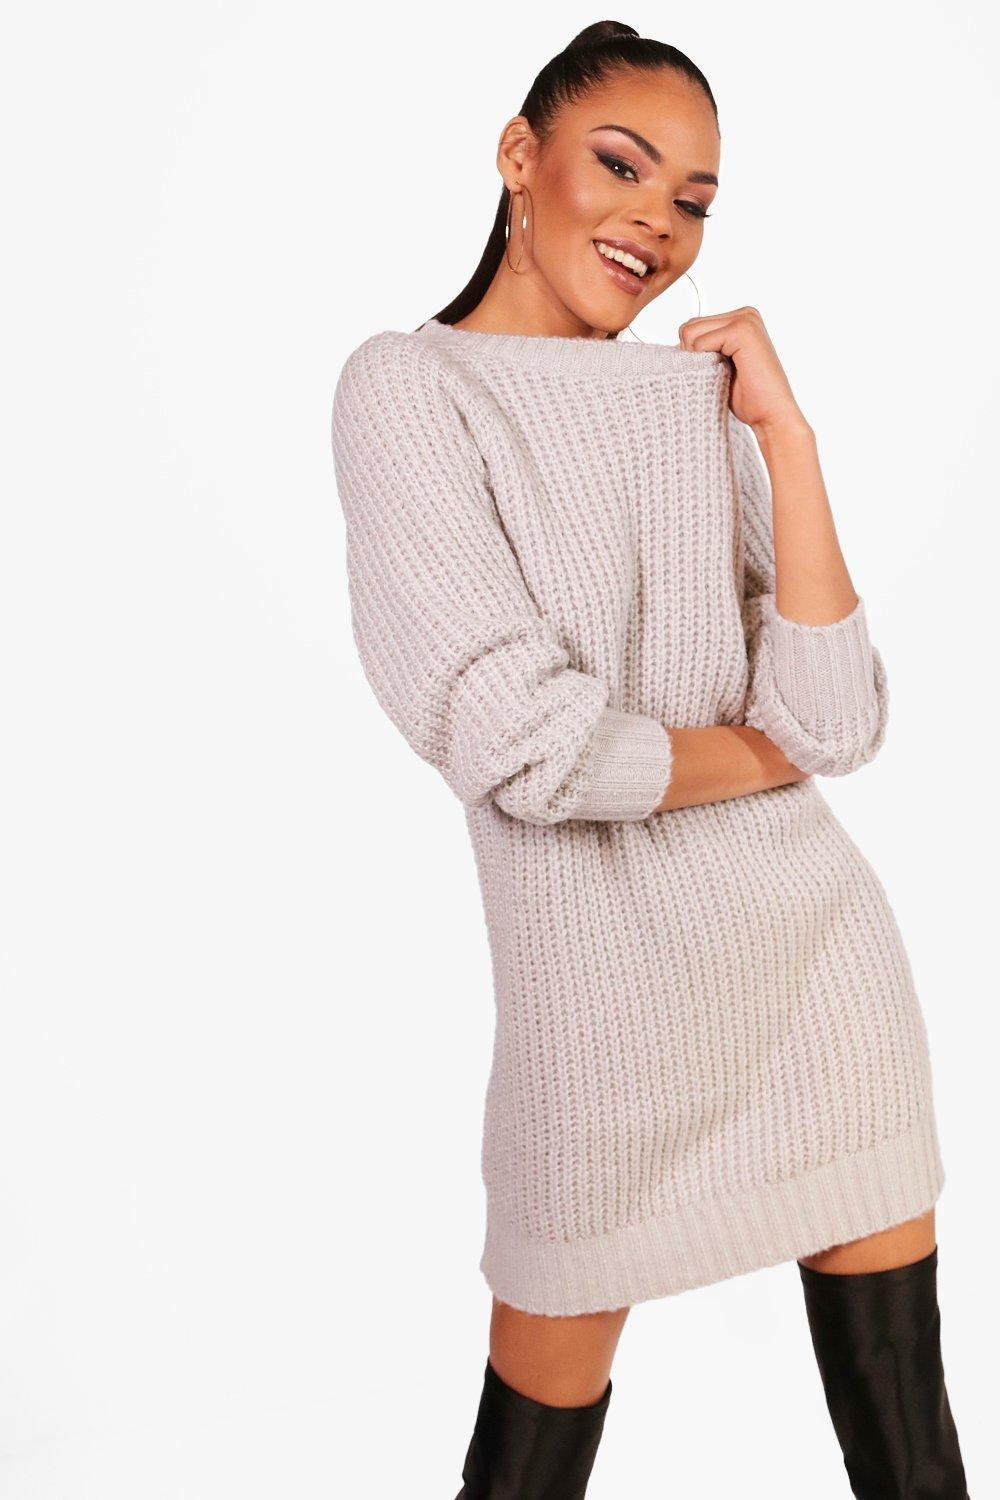 Find womens jumpers at Macy's Macy's Presents: The Edit - A curated mix of fashion and inspiration Check It Out Free Shipping with $75 purchase + Free Store Pickup.